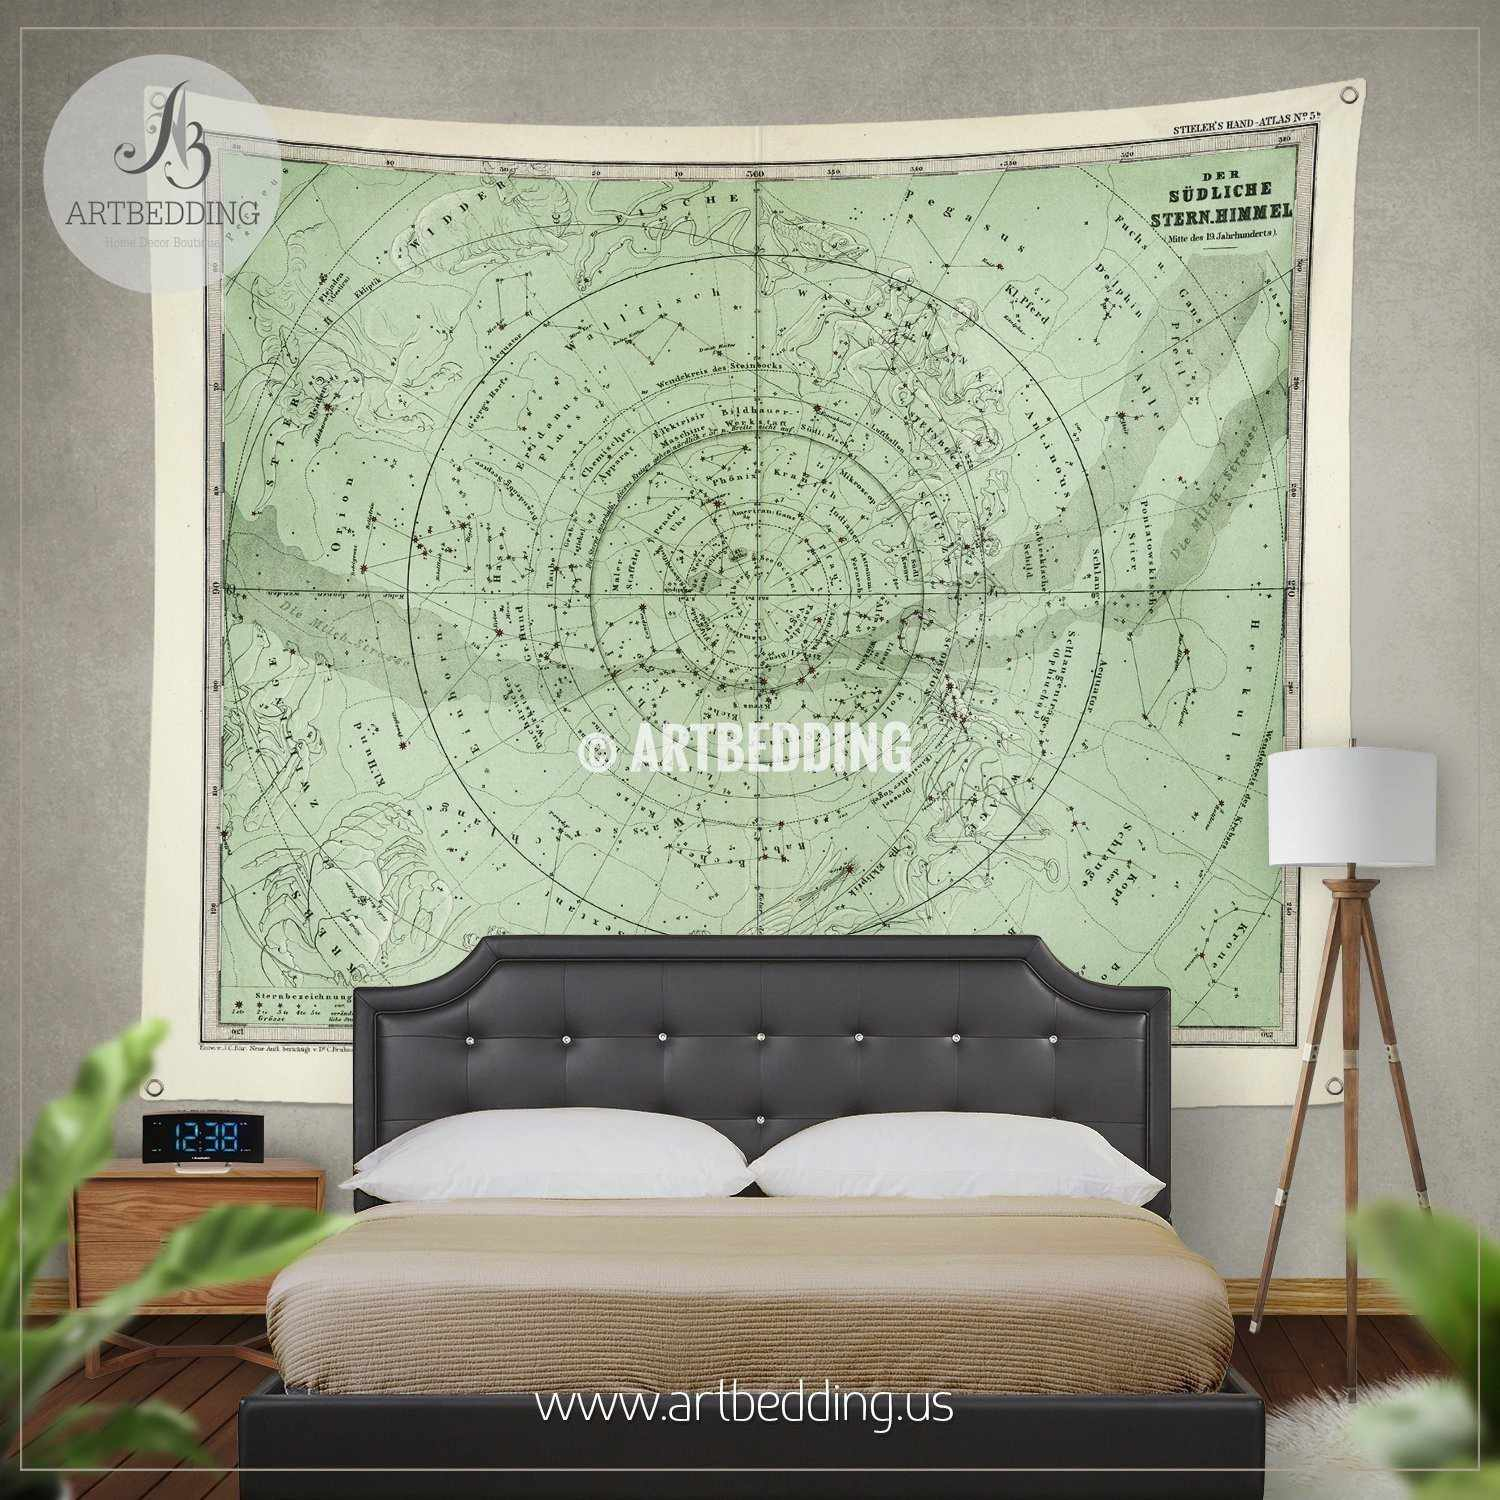 1872 antique stieler map of south sky star chart wall tapestry 1872 antique stieler map of south sky star chart wall tapestry vintage interior map wall amipublicfo Gallery